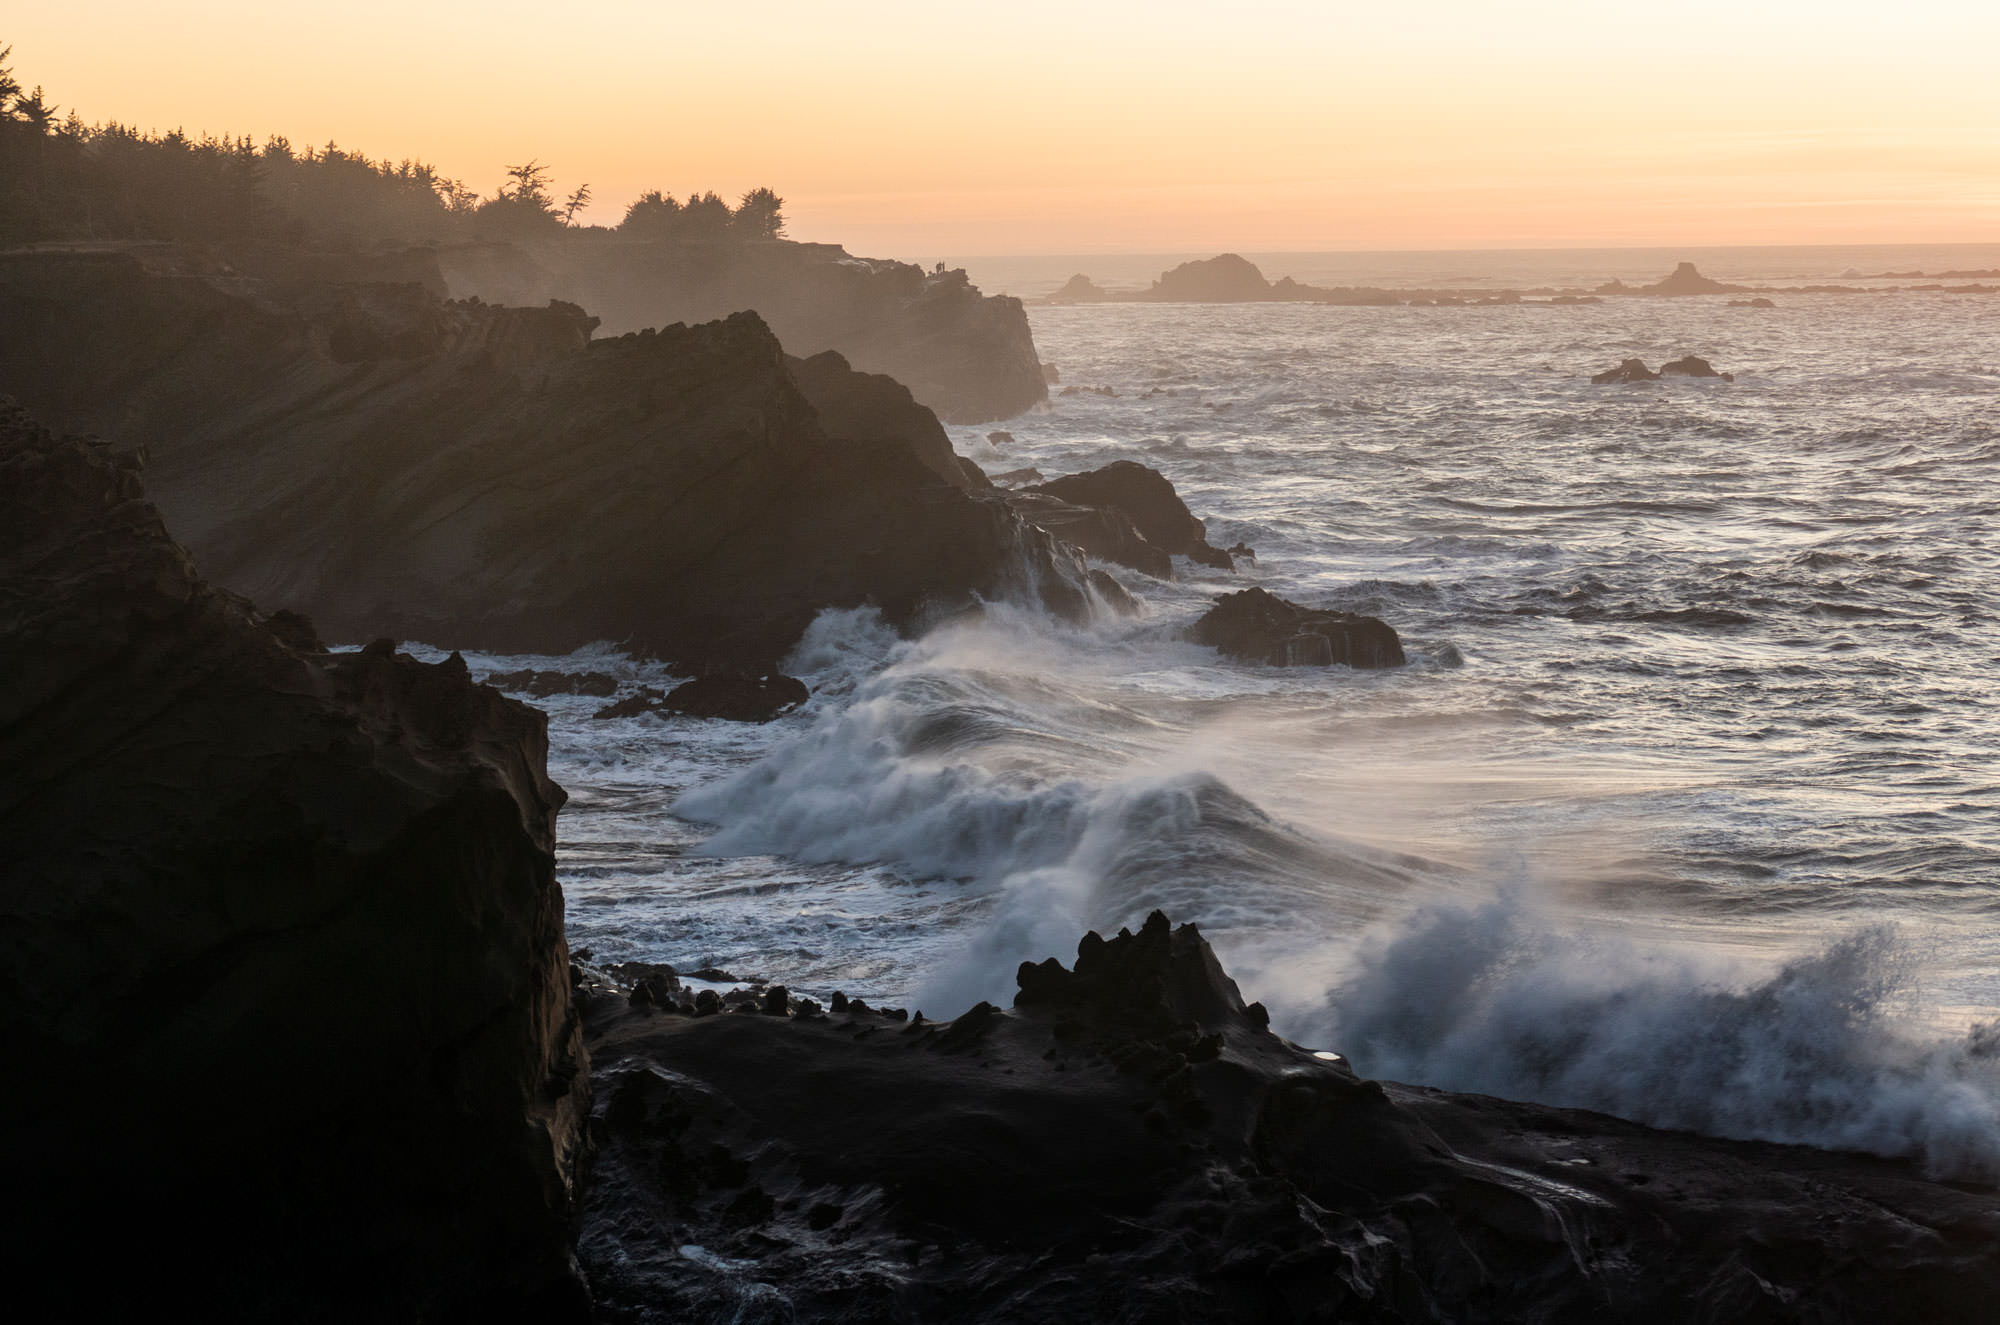 Sunset falls along the Oregon Coast horizon as waves roll towards the shoreline.